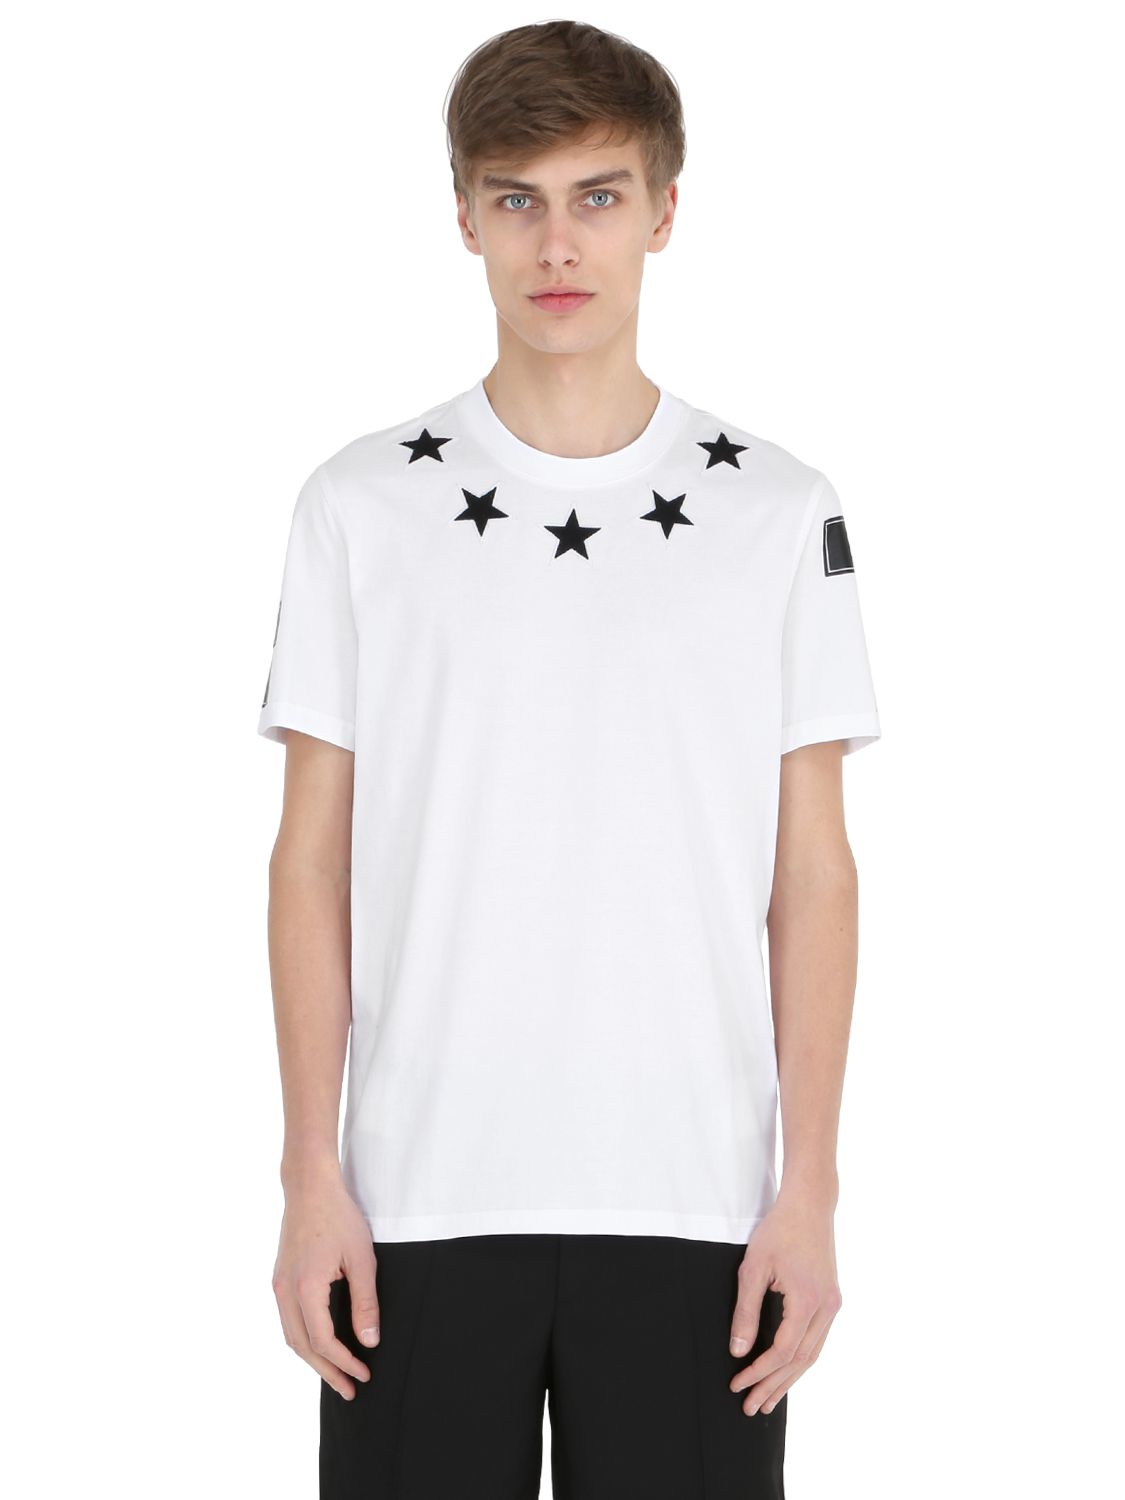 Givenchy cuban star patches jersey t shirt in black for for Givenchy 5 star shirt